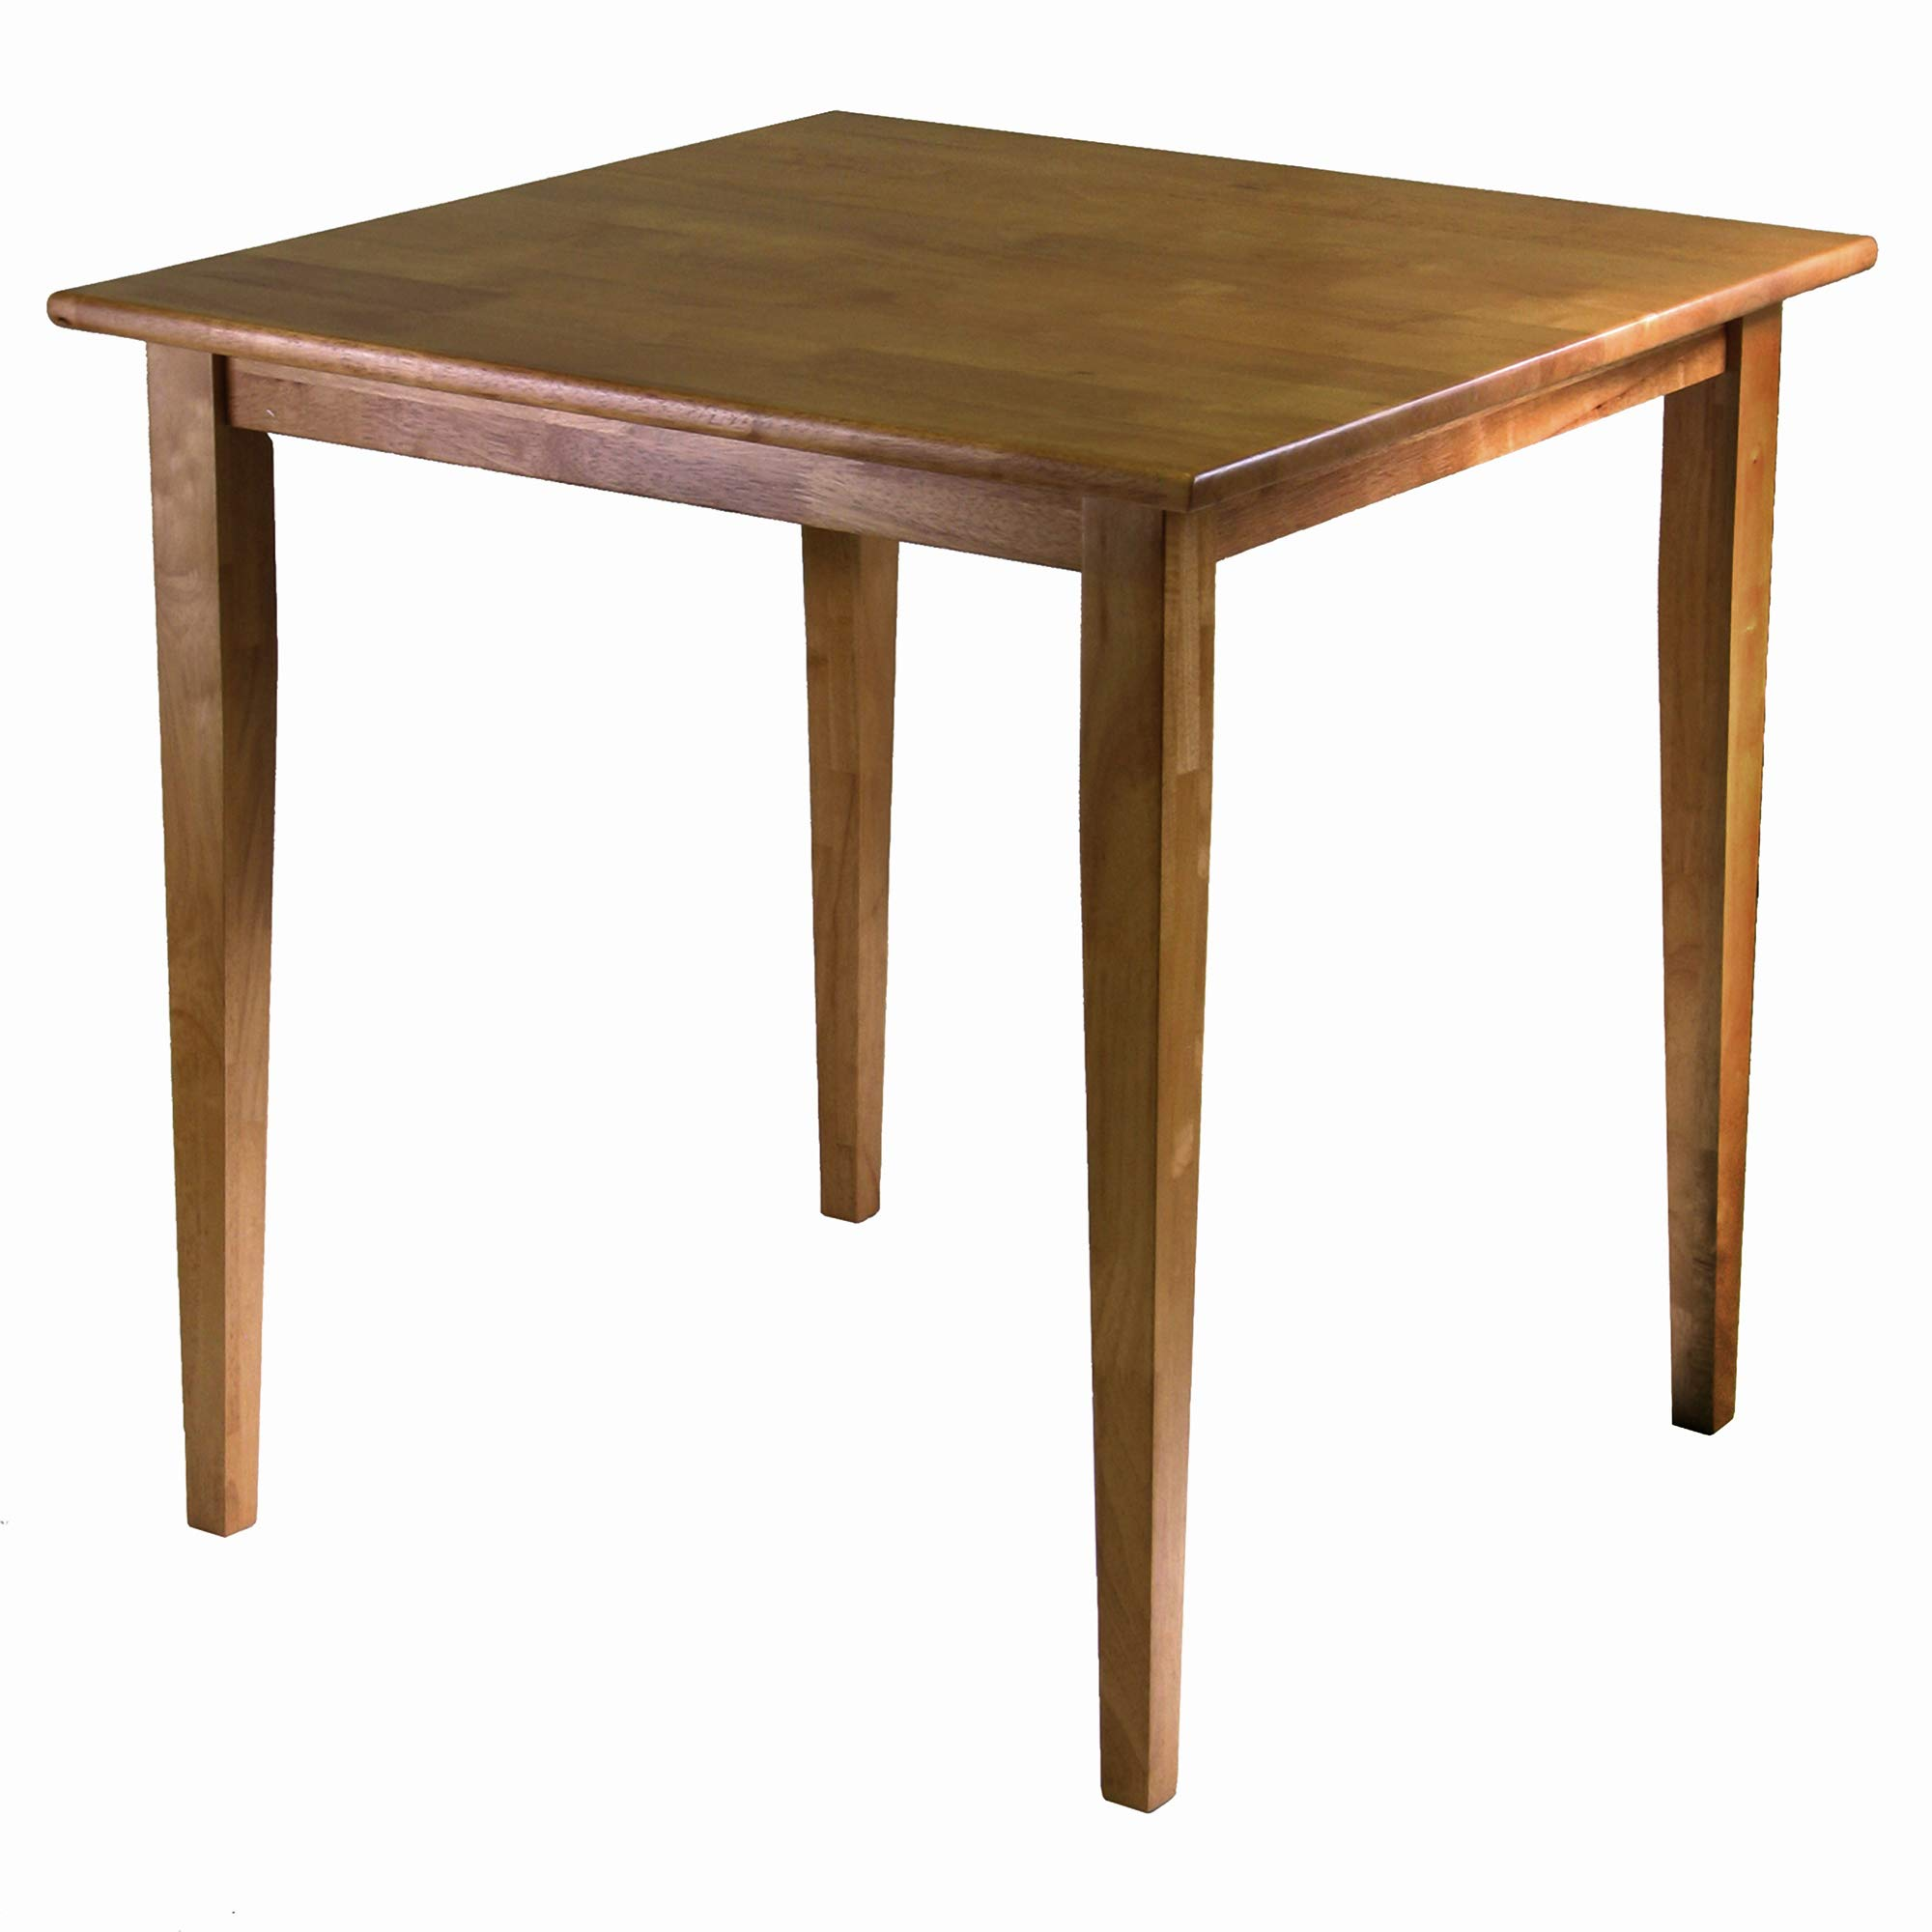 Winsome Wood 34130 Groveland Dining, Oak by Winsome Wood